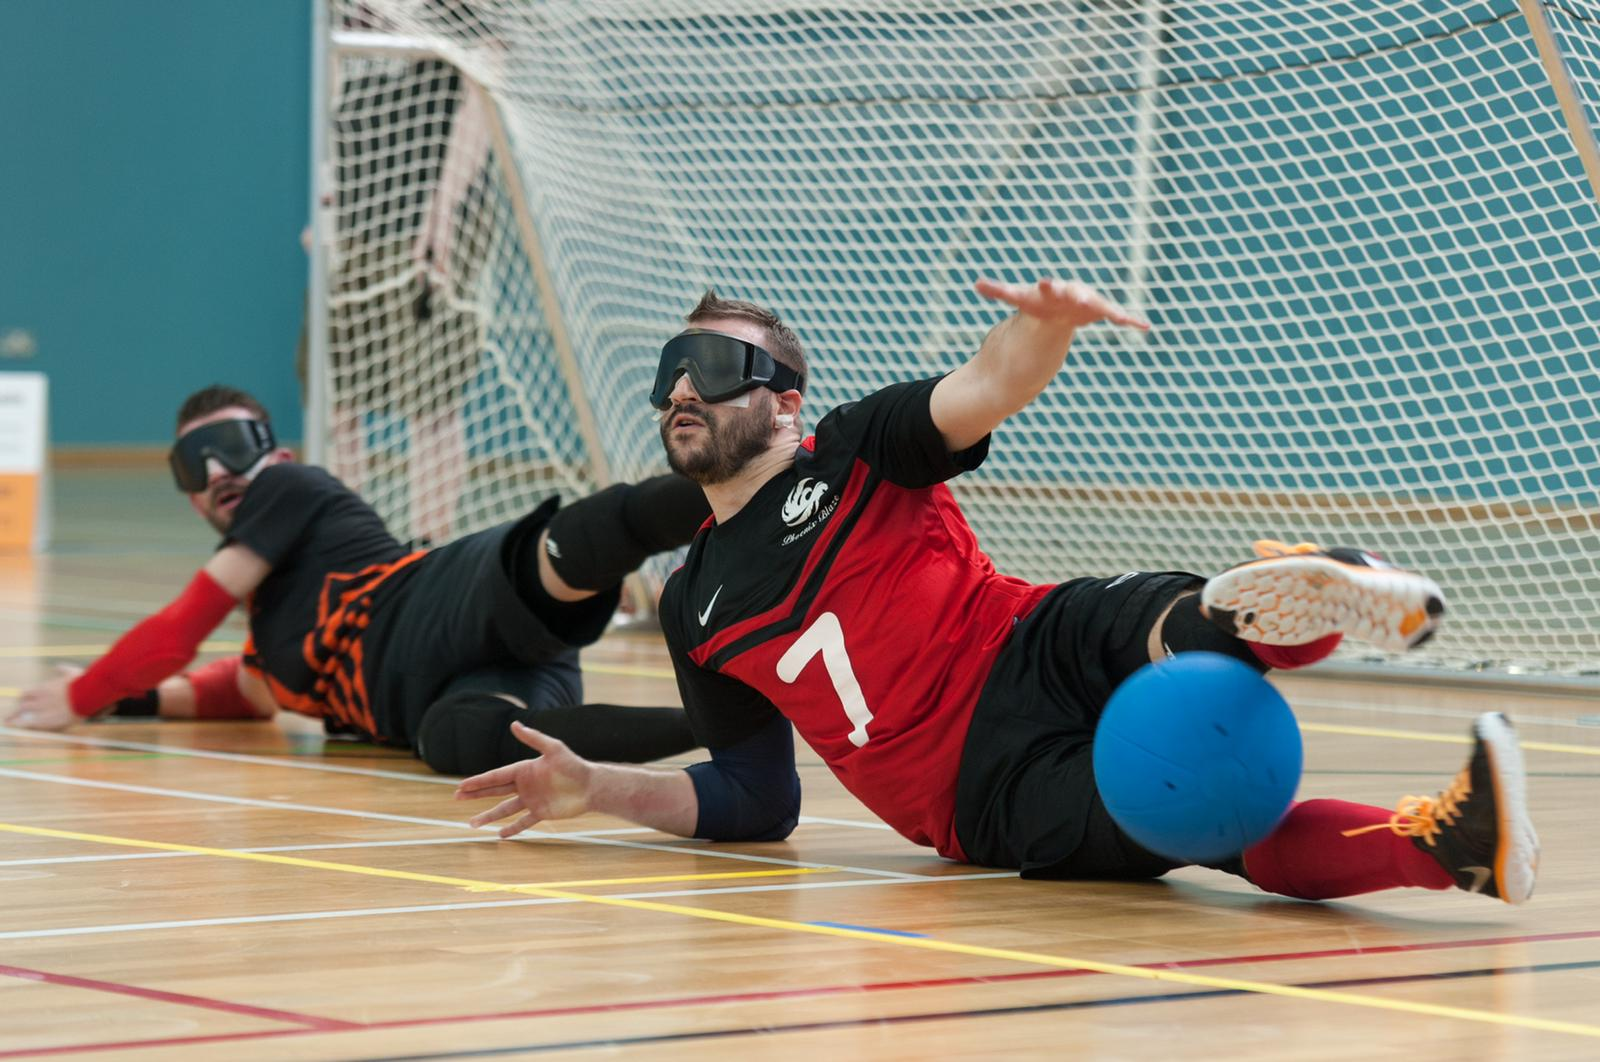 Dave Butler action shot, diving to save a shot